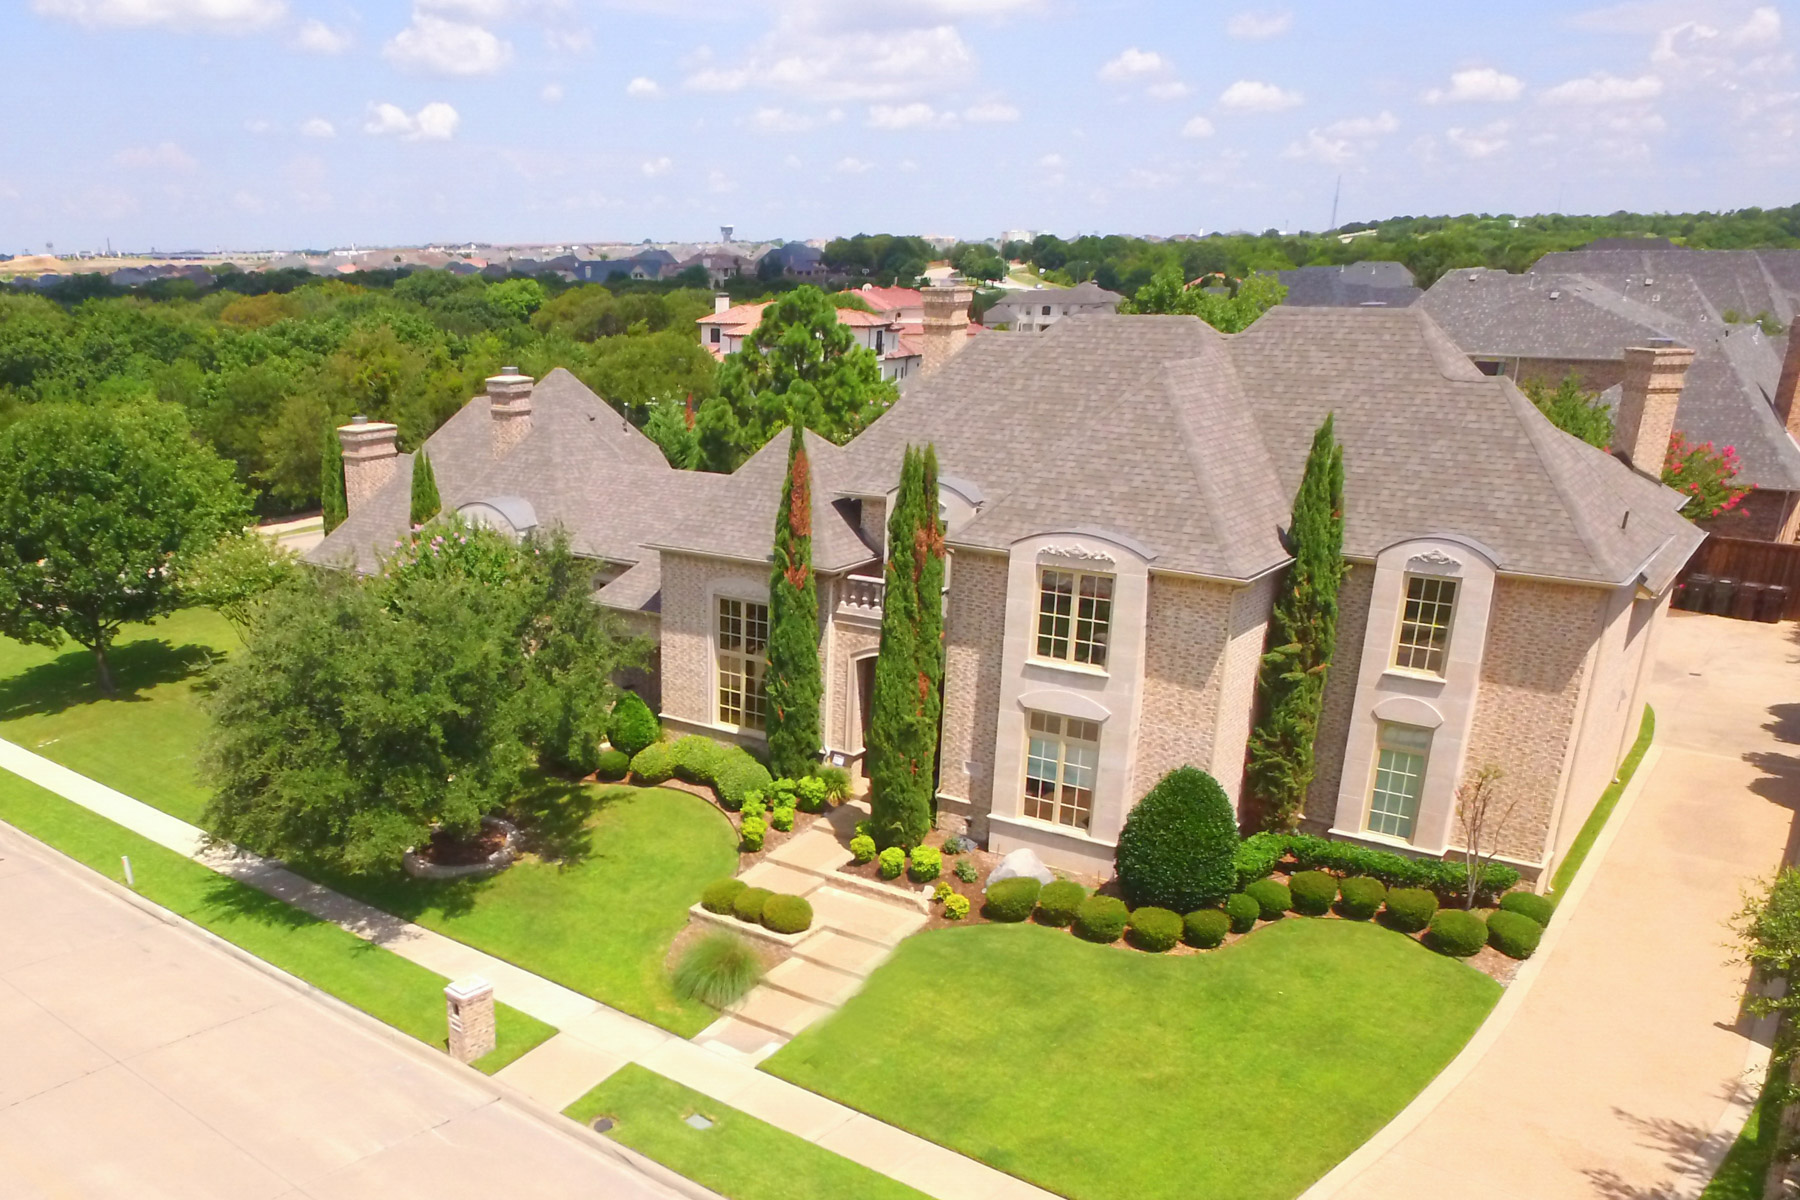 Casa Unifamiliar por un Venta en Fabulous Double Lot Home in Shoal Creek 6641 Woodland Hills Lane, Plano, Texas, 75024 Estados Unidos